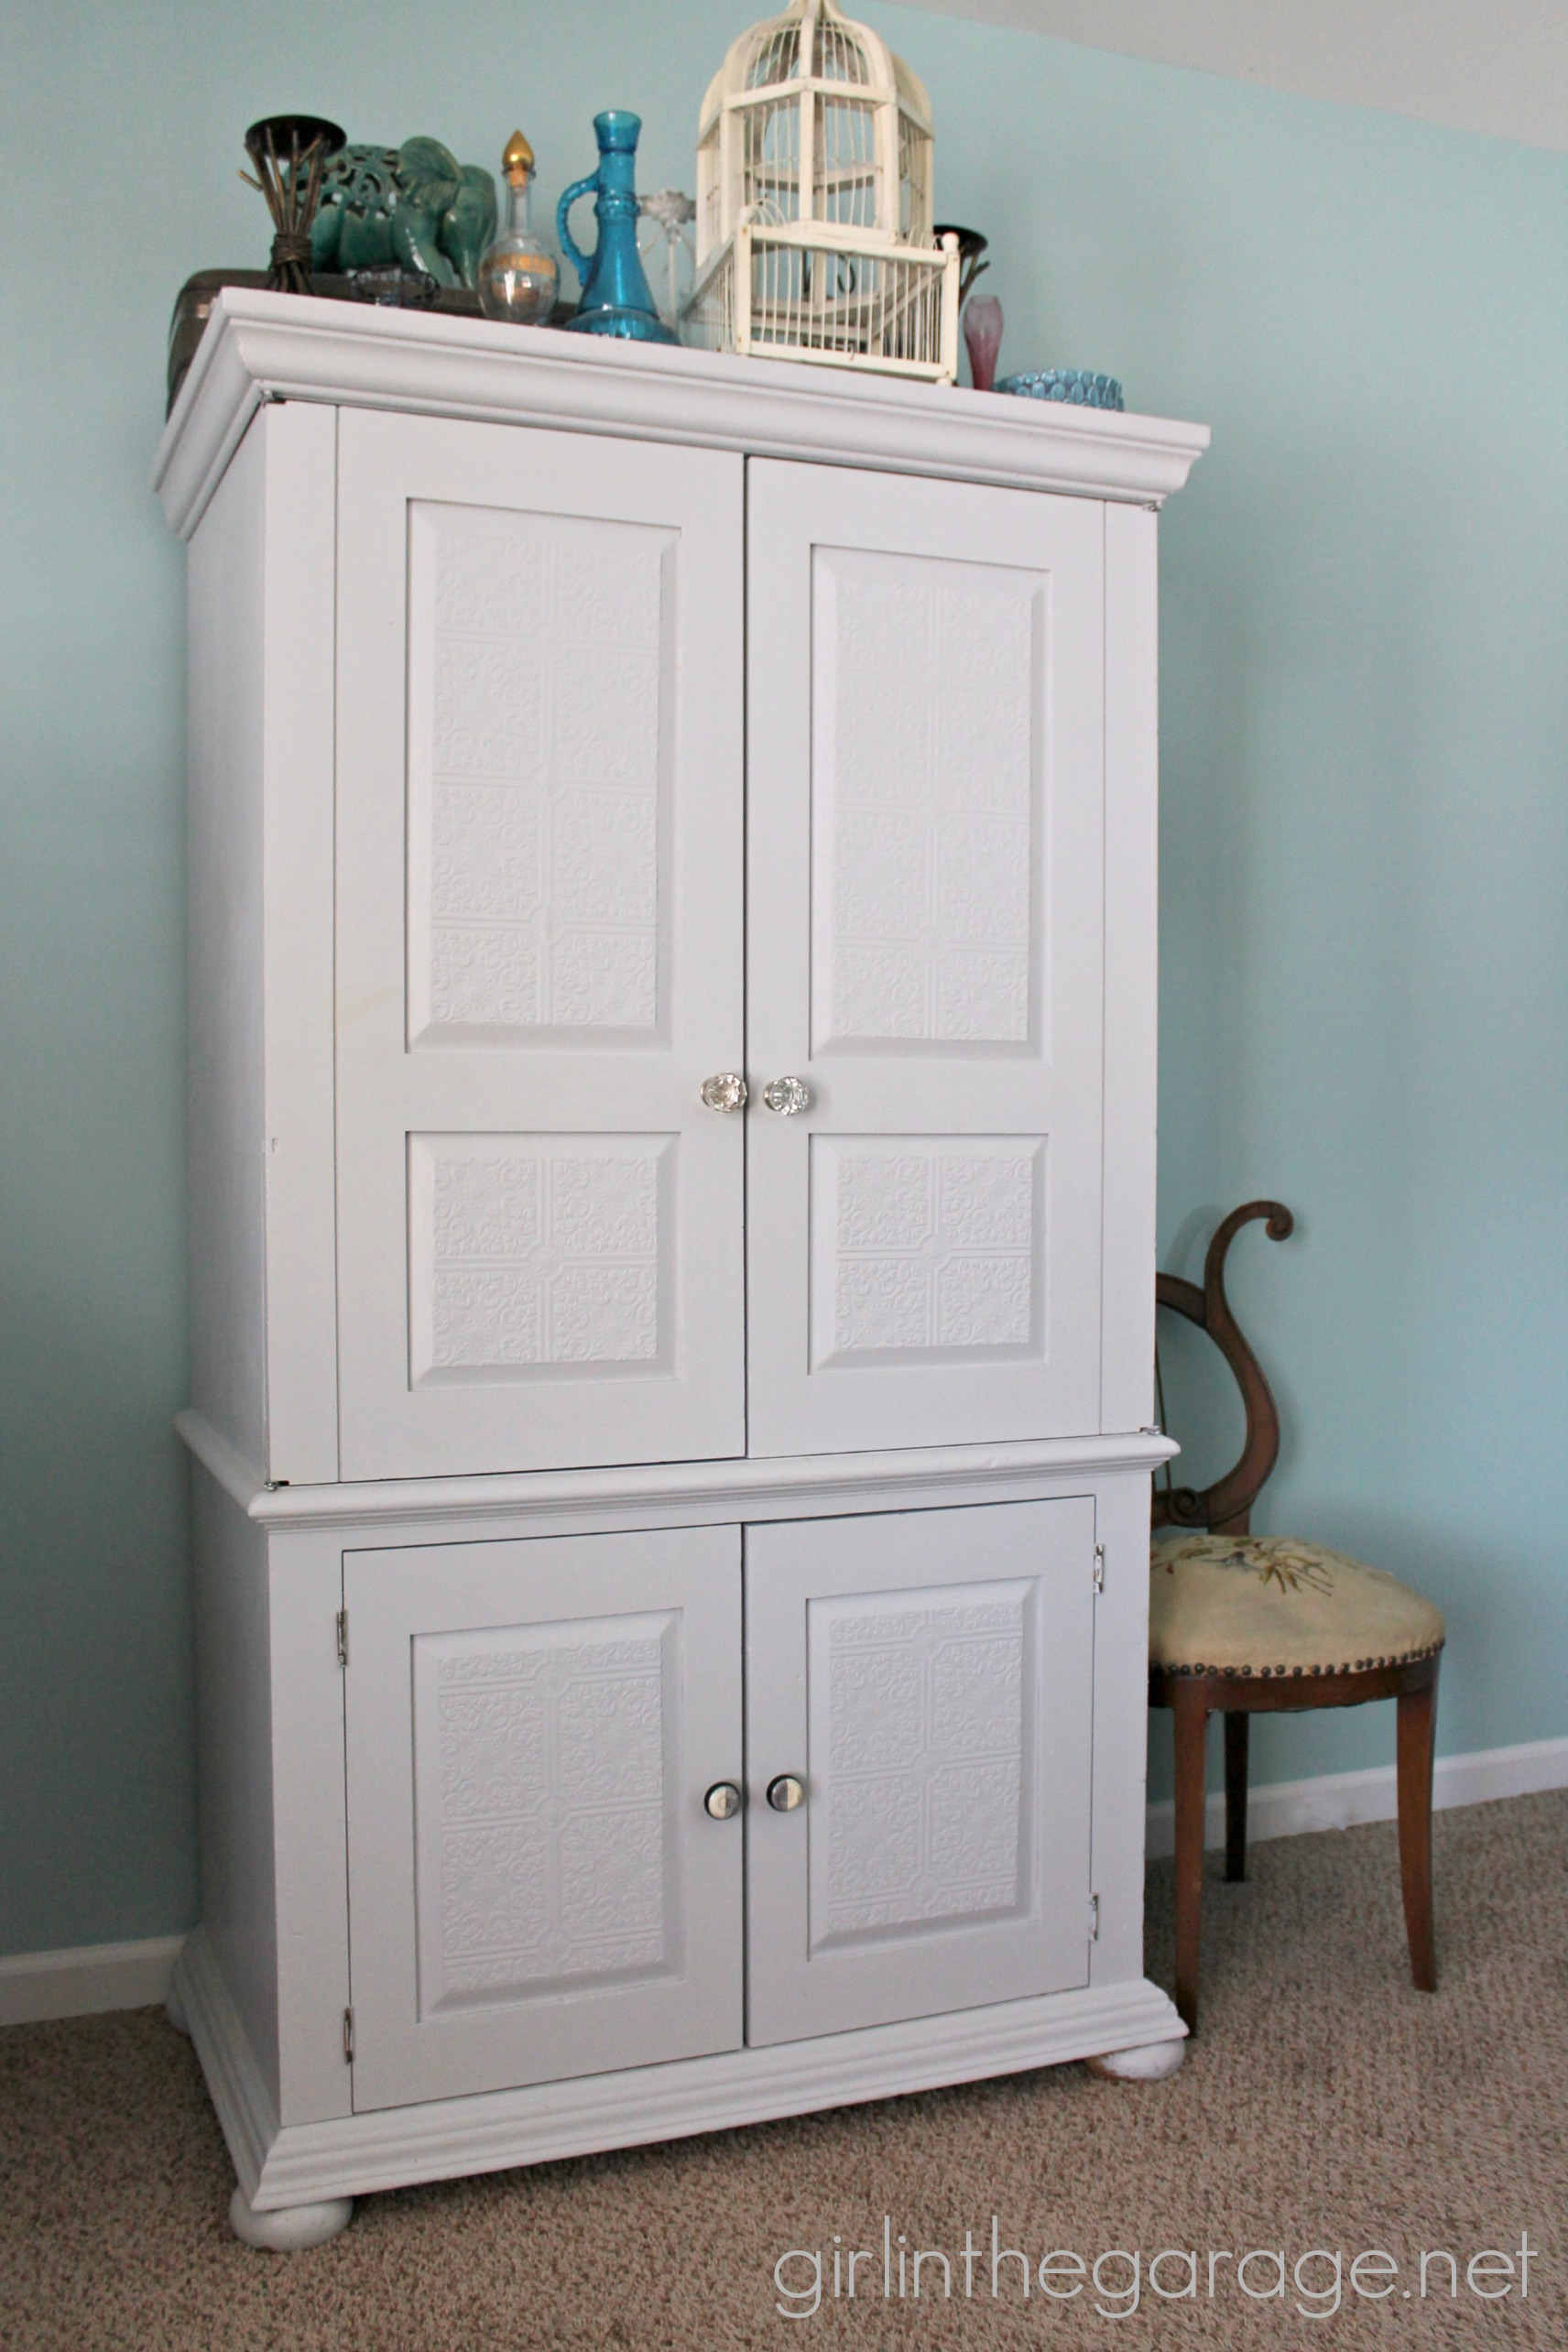 Drab-to-Fab Armoire Makeover | Girl in the Garage®